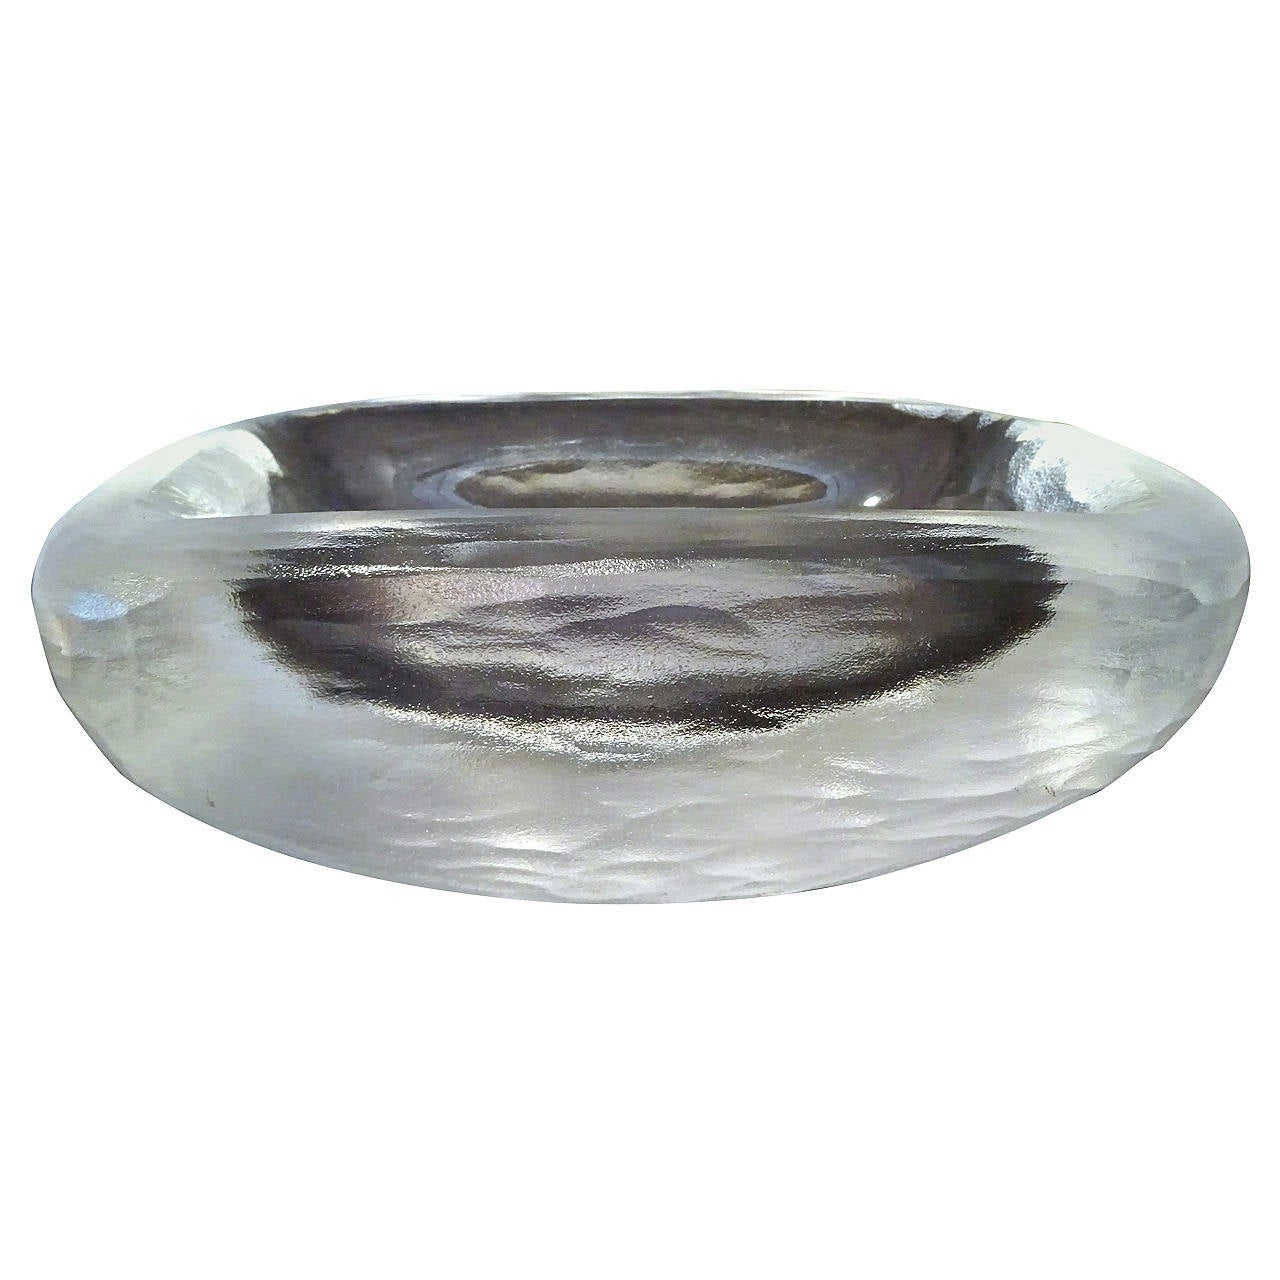 Large Vicke Lindstrand for Orrefors Art Glass Bowl, C 1940 For Sale